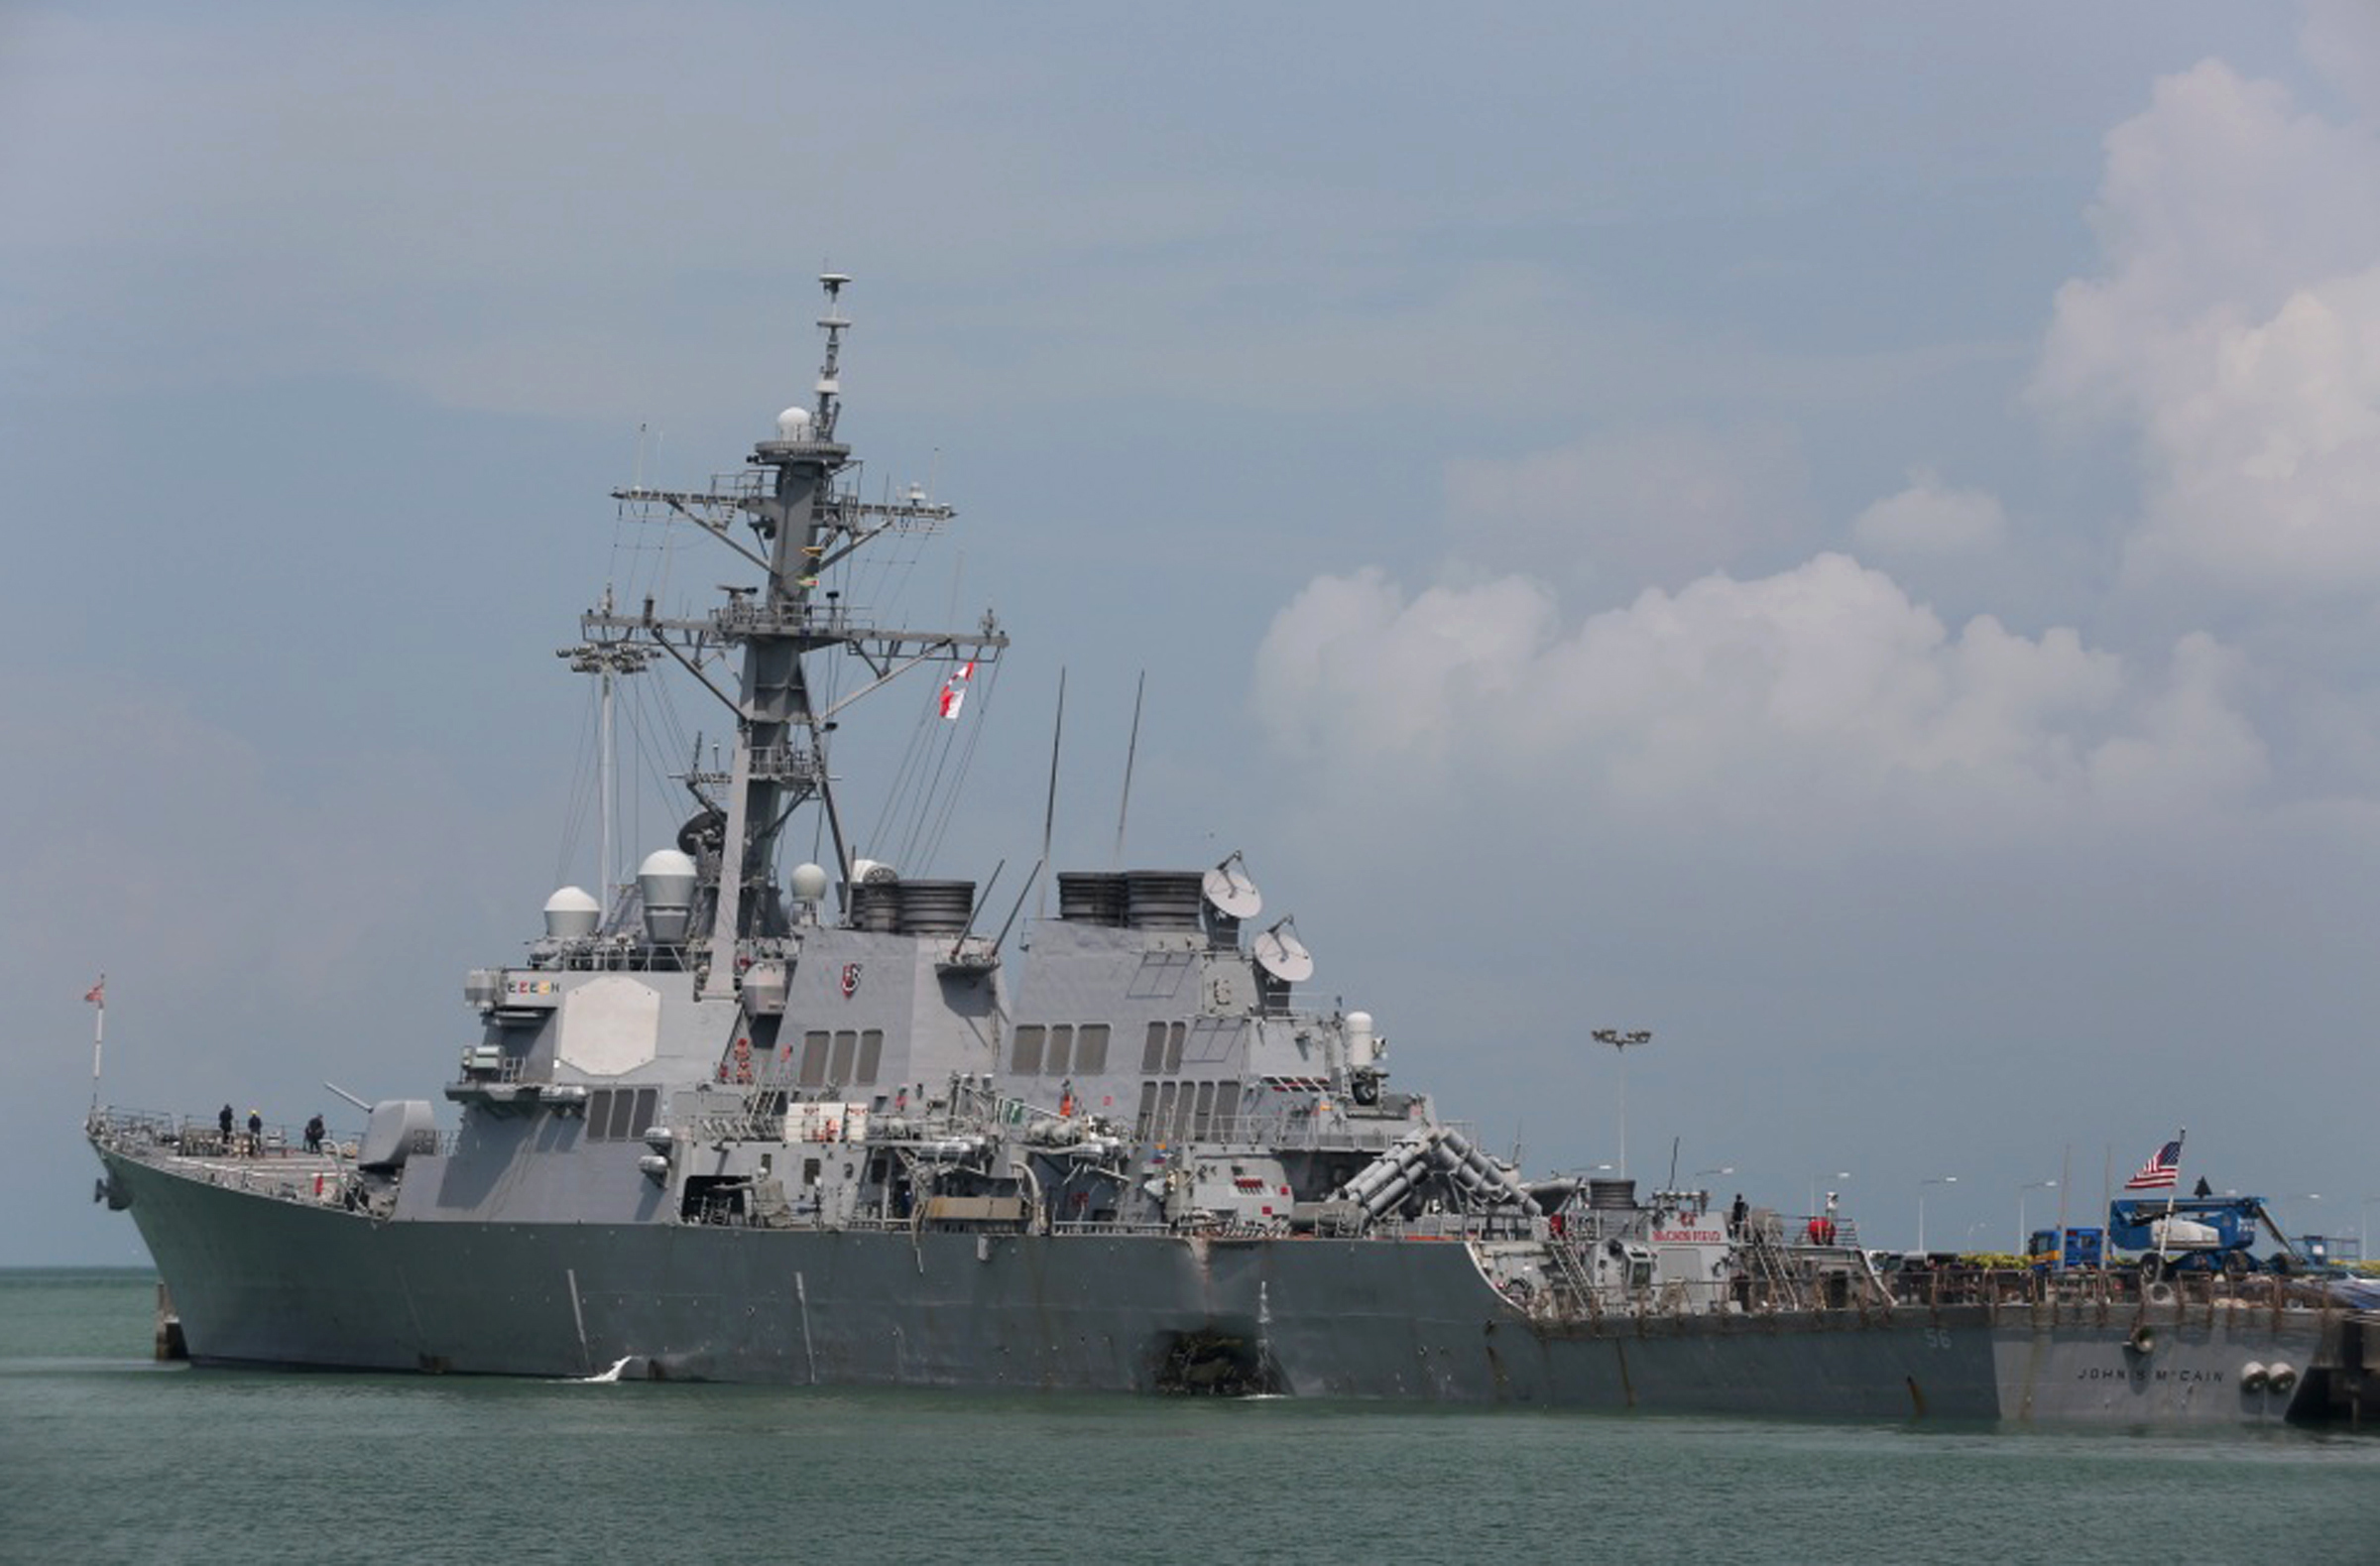 """Singapore US Navy Ship Collision-10 The Guided-missile destroyer USS John S. McCain (DDG 56) is moored pier side at Changi naval base in Singapore following a collision with the merchant vessel Alnic MC Monday, Aug. 21, 2017. The USS John S. McCain was docked at Singapore's naval base with """"significant damage"""" to its hull after an early morning collision with the Alnic MC as vessels from several nations searched Monday for missing U.S. sailors. (Grady T. Fontana/U.S. Navy photo via AP)"""